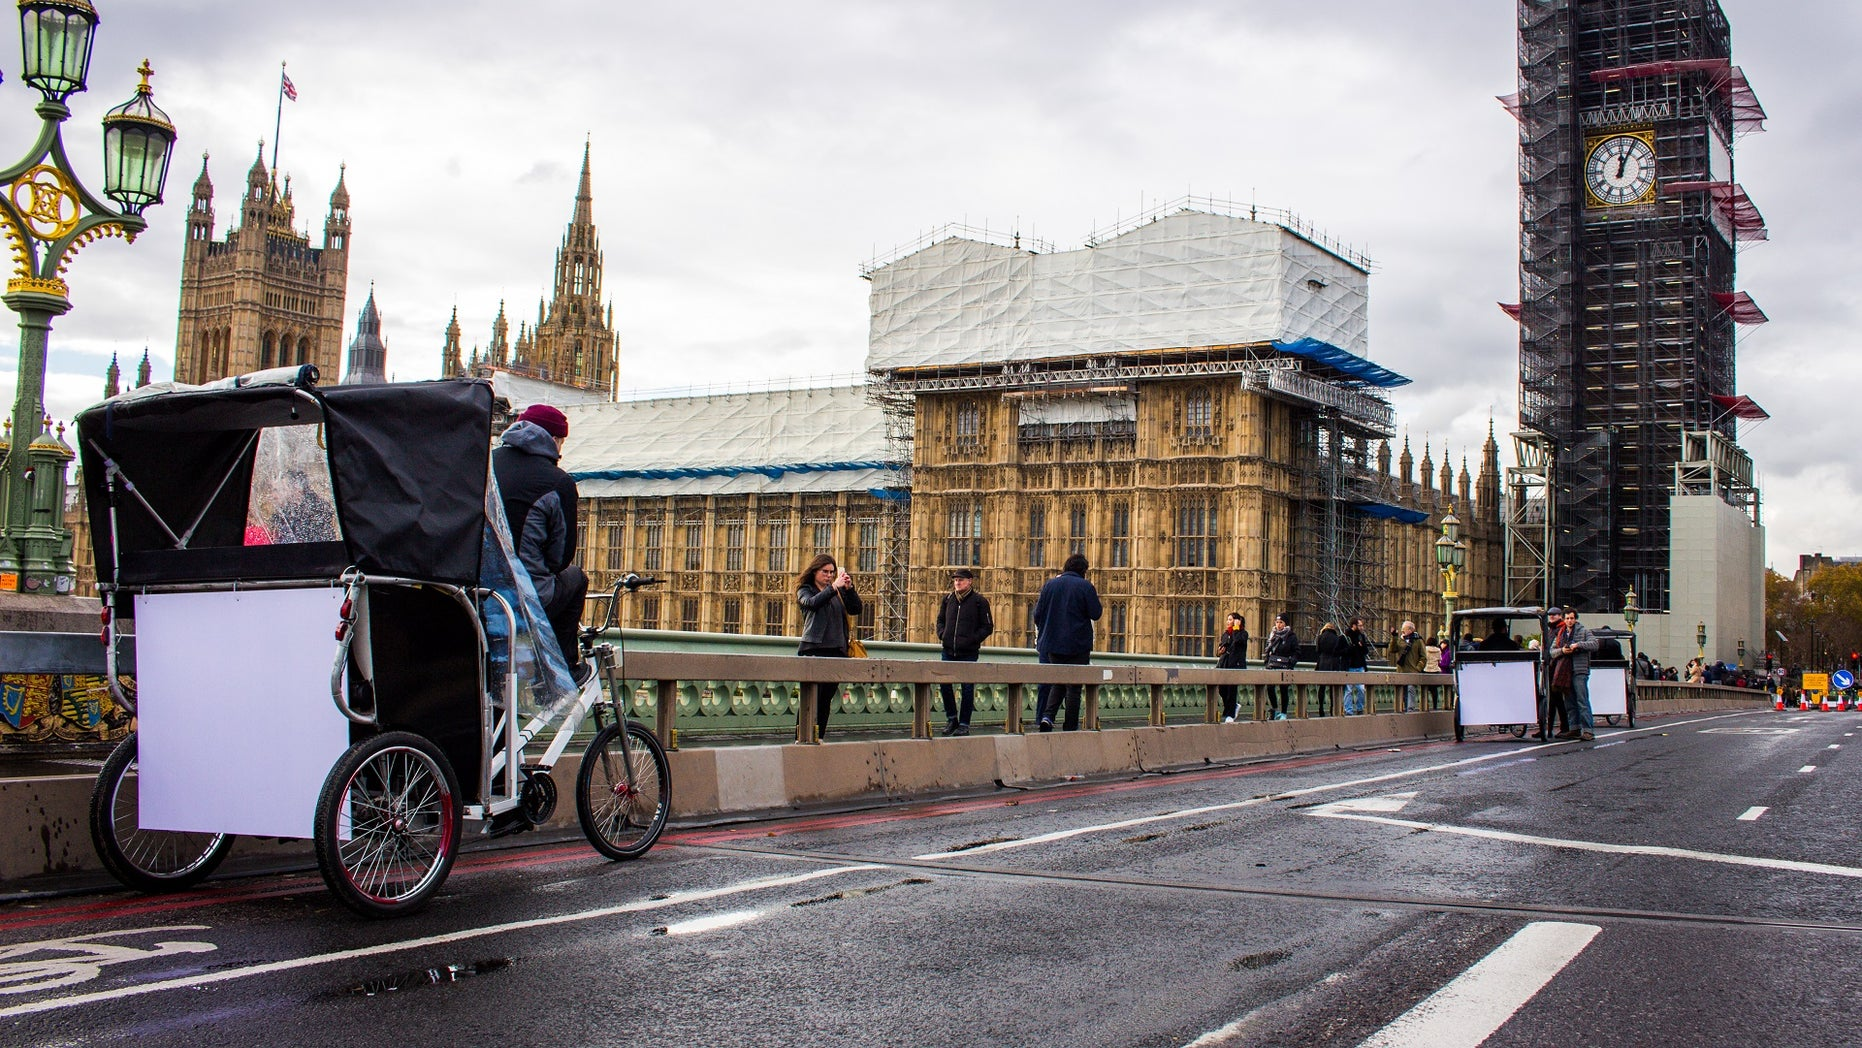 Taco Bell infused its own chimes with that of Big Ben, which has been silent since 2017, and played it on speakers hidden in rickshaws driven around the city.